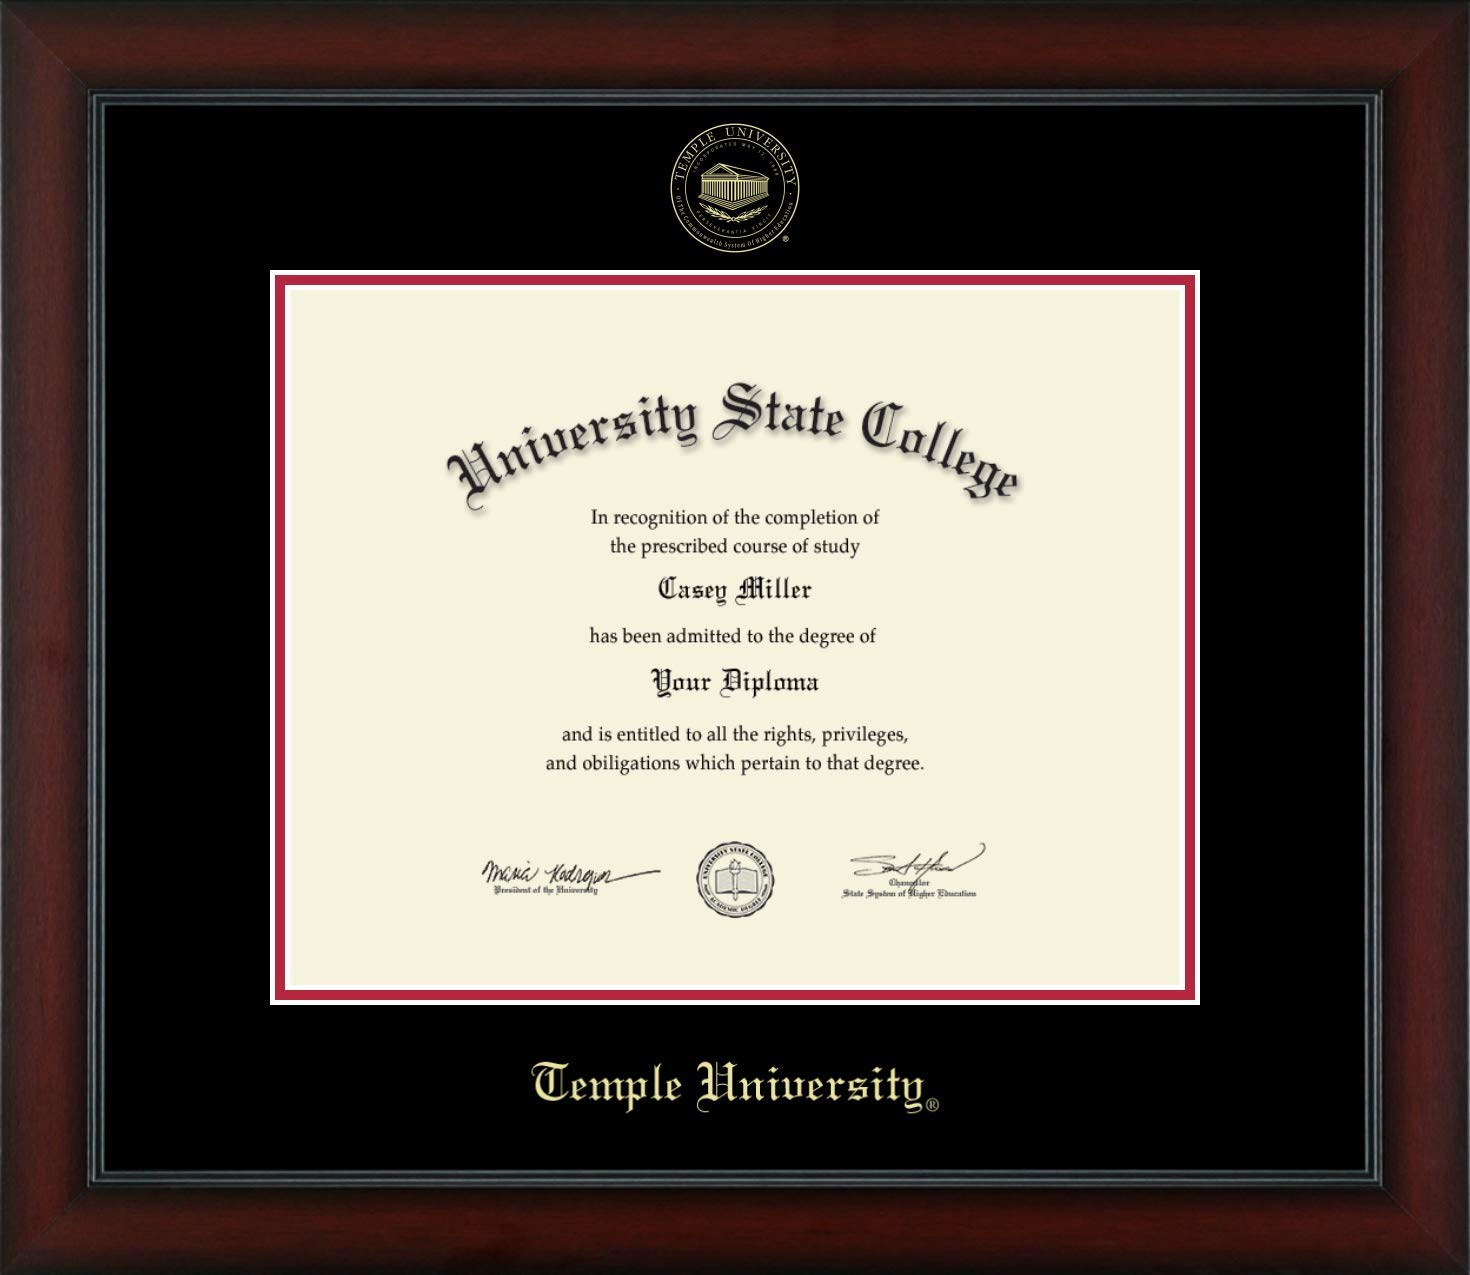 Temple University - Officially Licensed - Gold Embossed Diploma Frame - Diploma Size 14'' x 11''